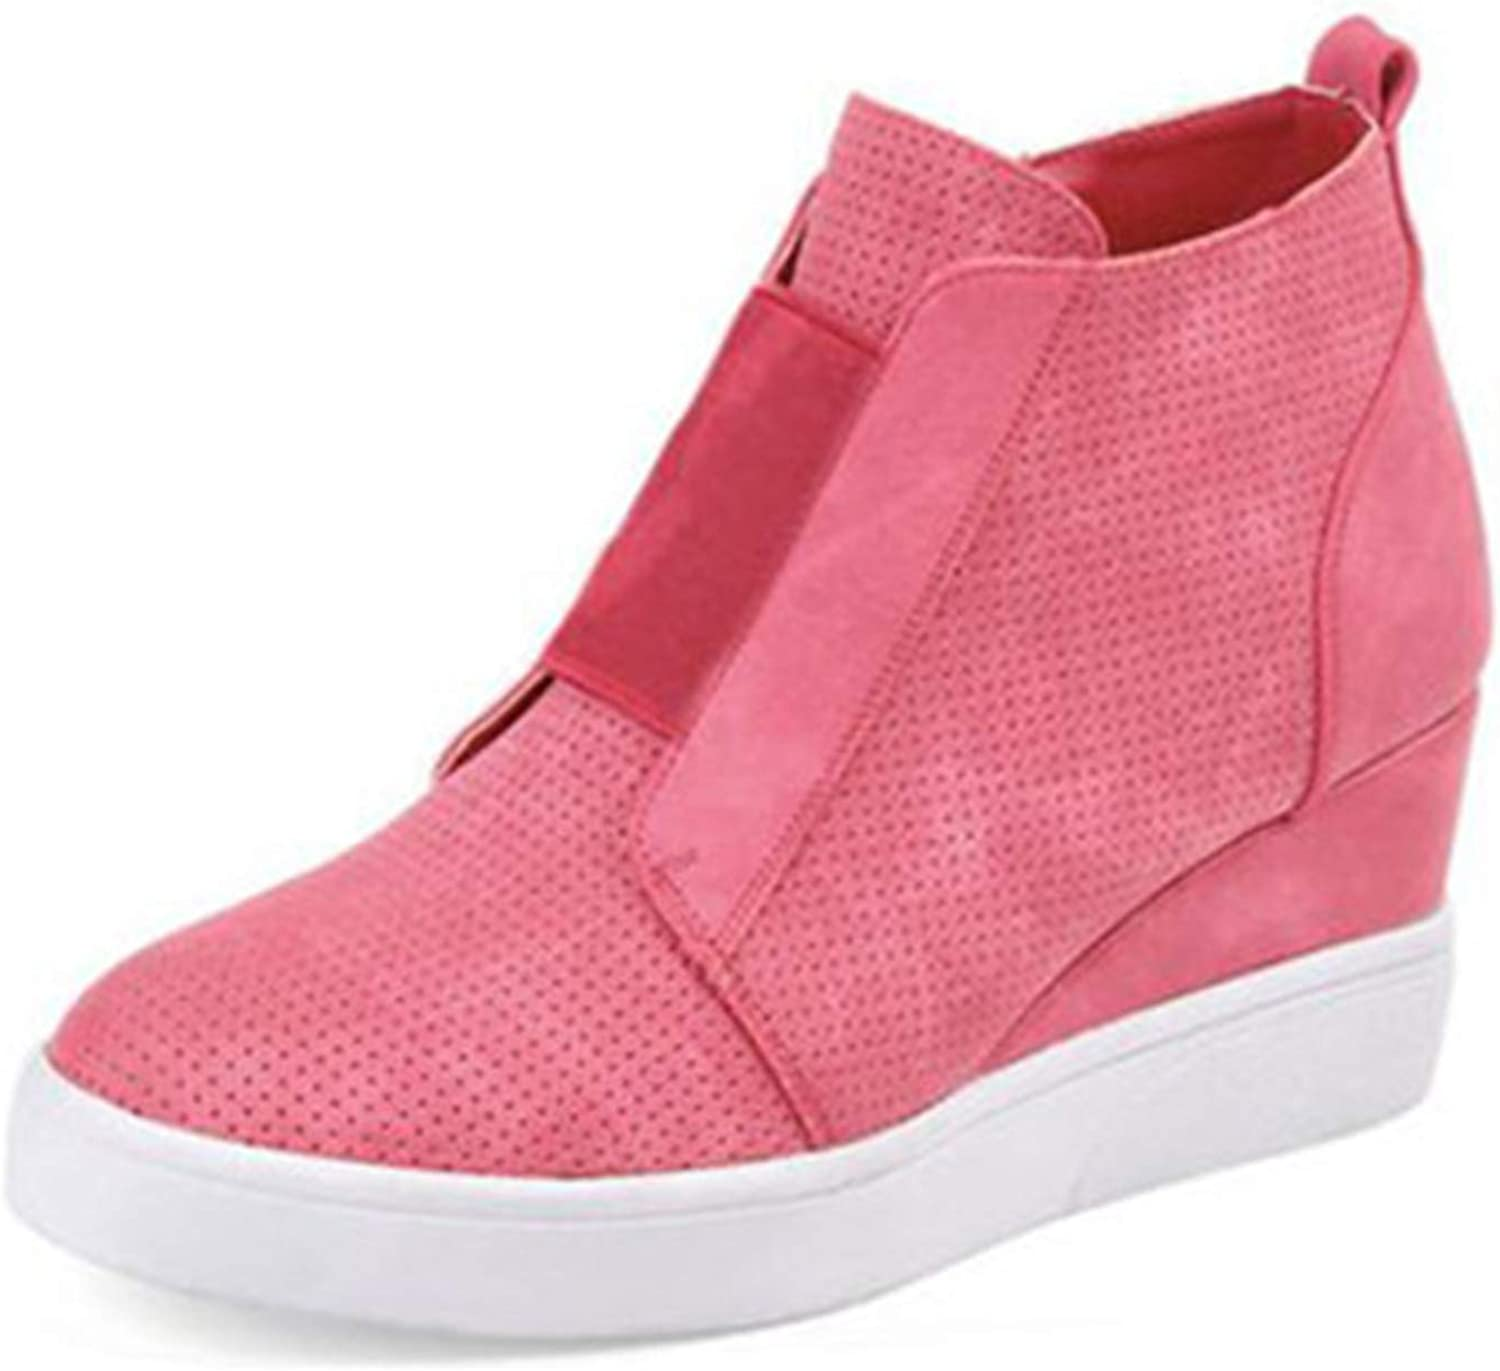 Fashion Women Sneakers Spring Autumn Comfort Side Zip Designer Ankle Boots Pink 6